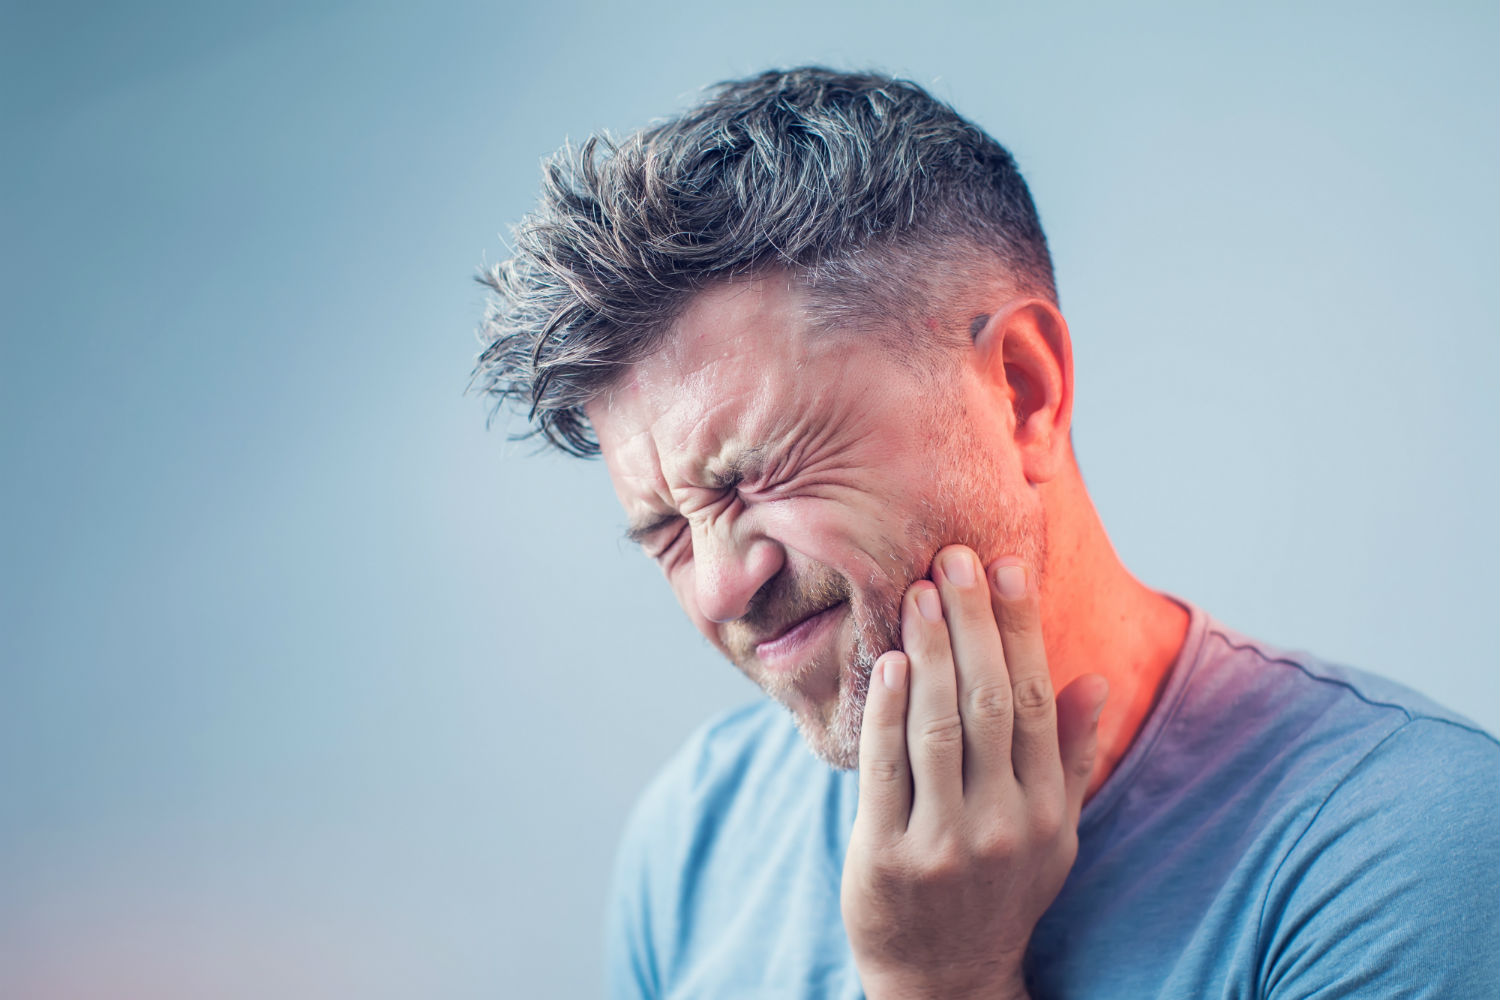 Why Do I Have A Toothache On An Airplane?